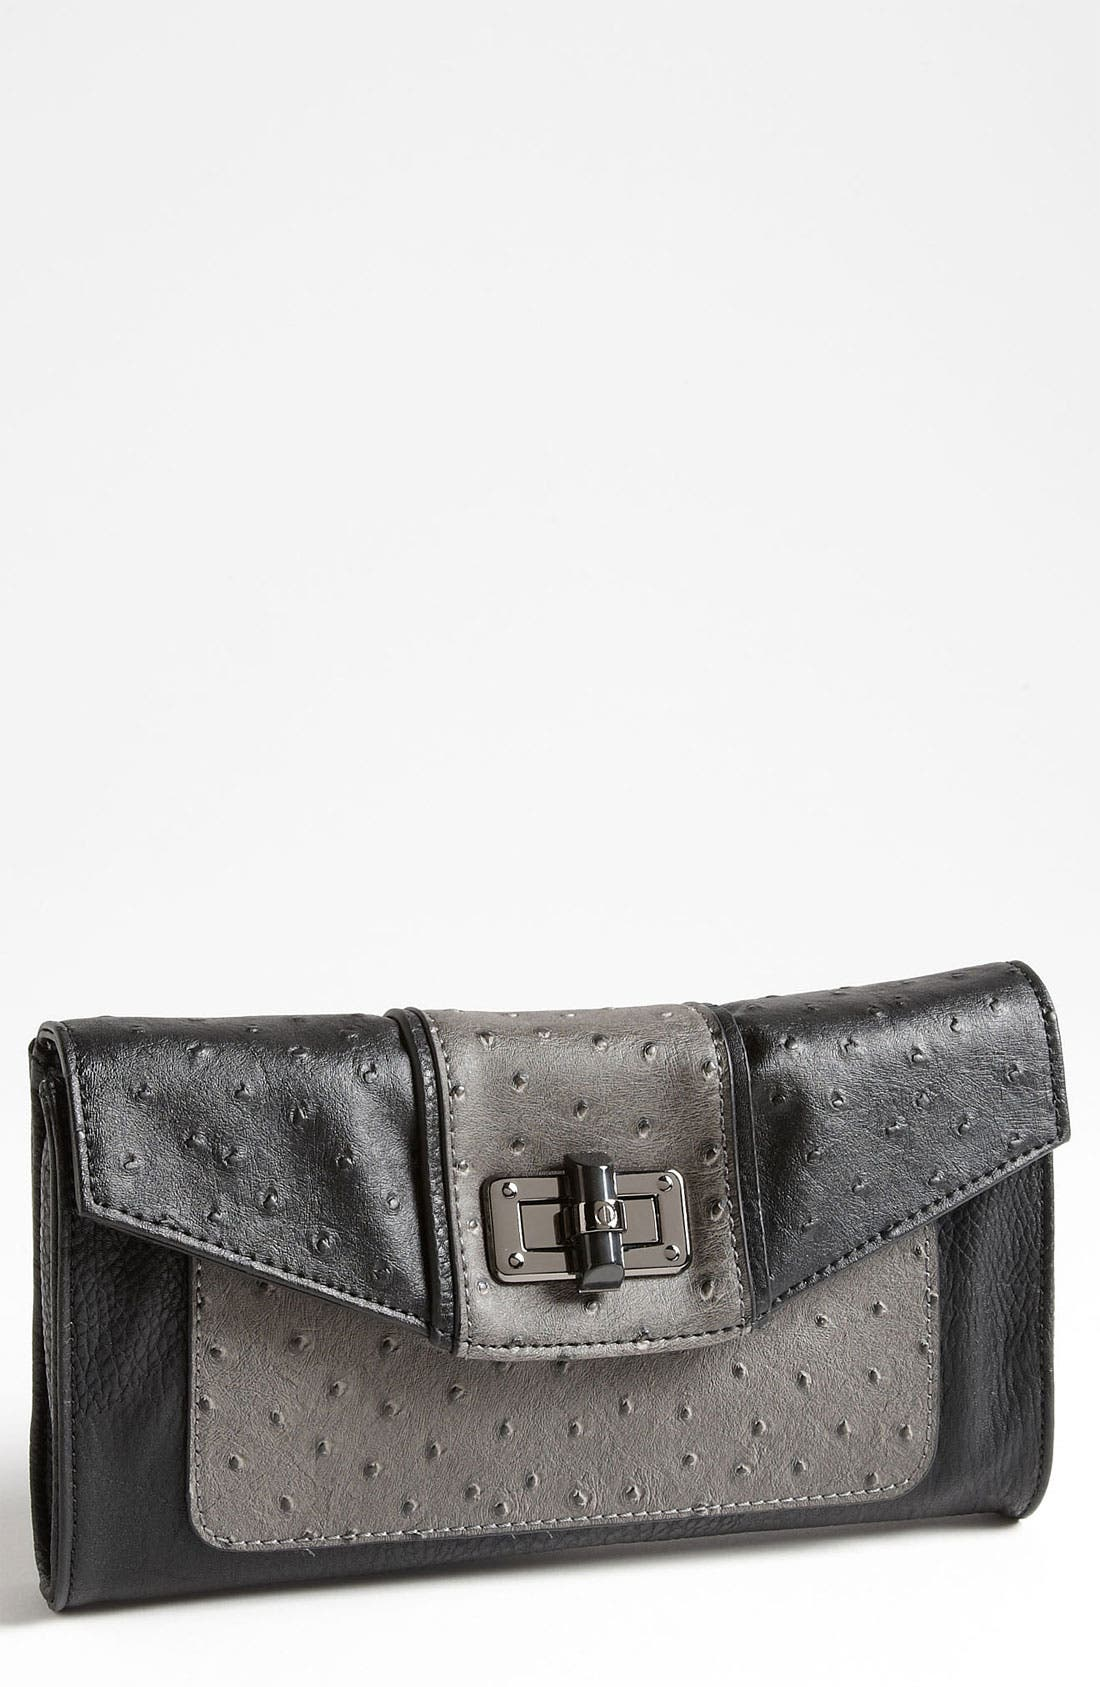 Alternate Image 1 Selected - Danielle Nicole 'London' Clutch